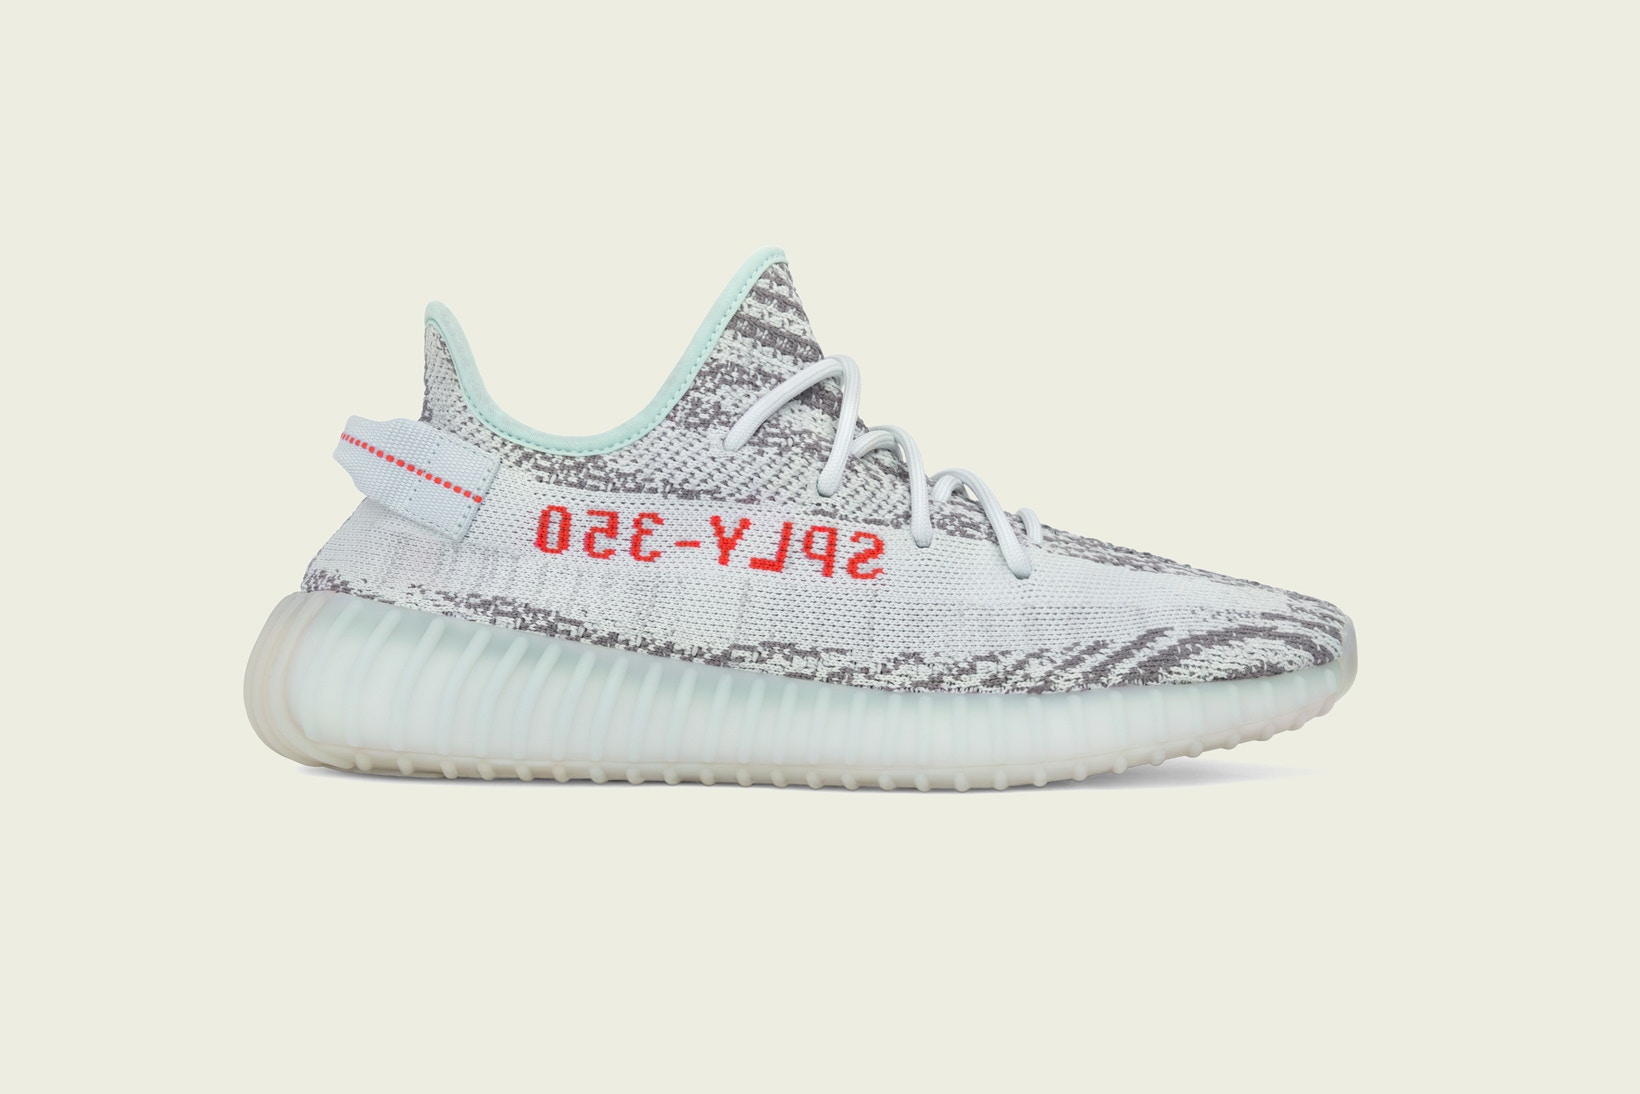 adidas-originals-yeezy-boost-350-v2-blue-tint-store-list-1